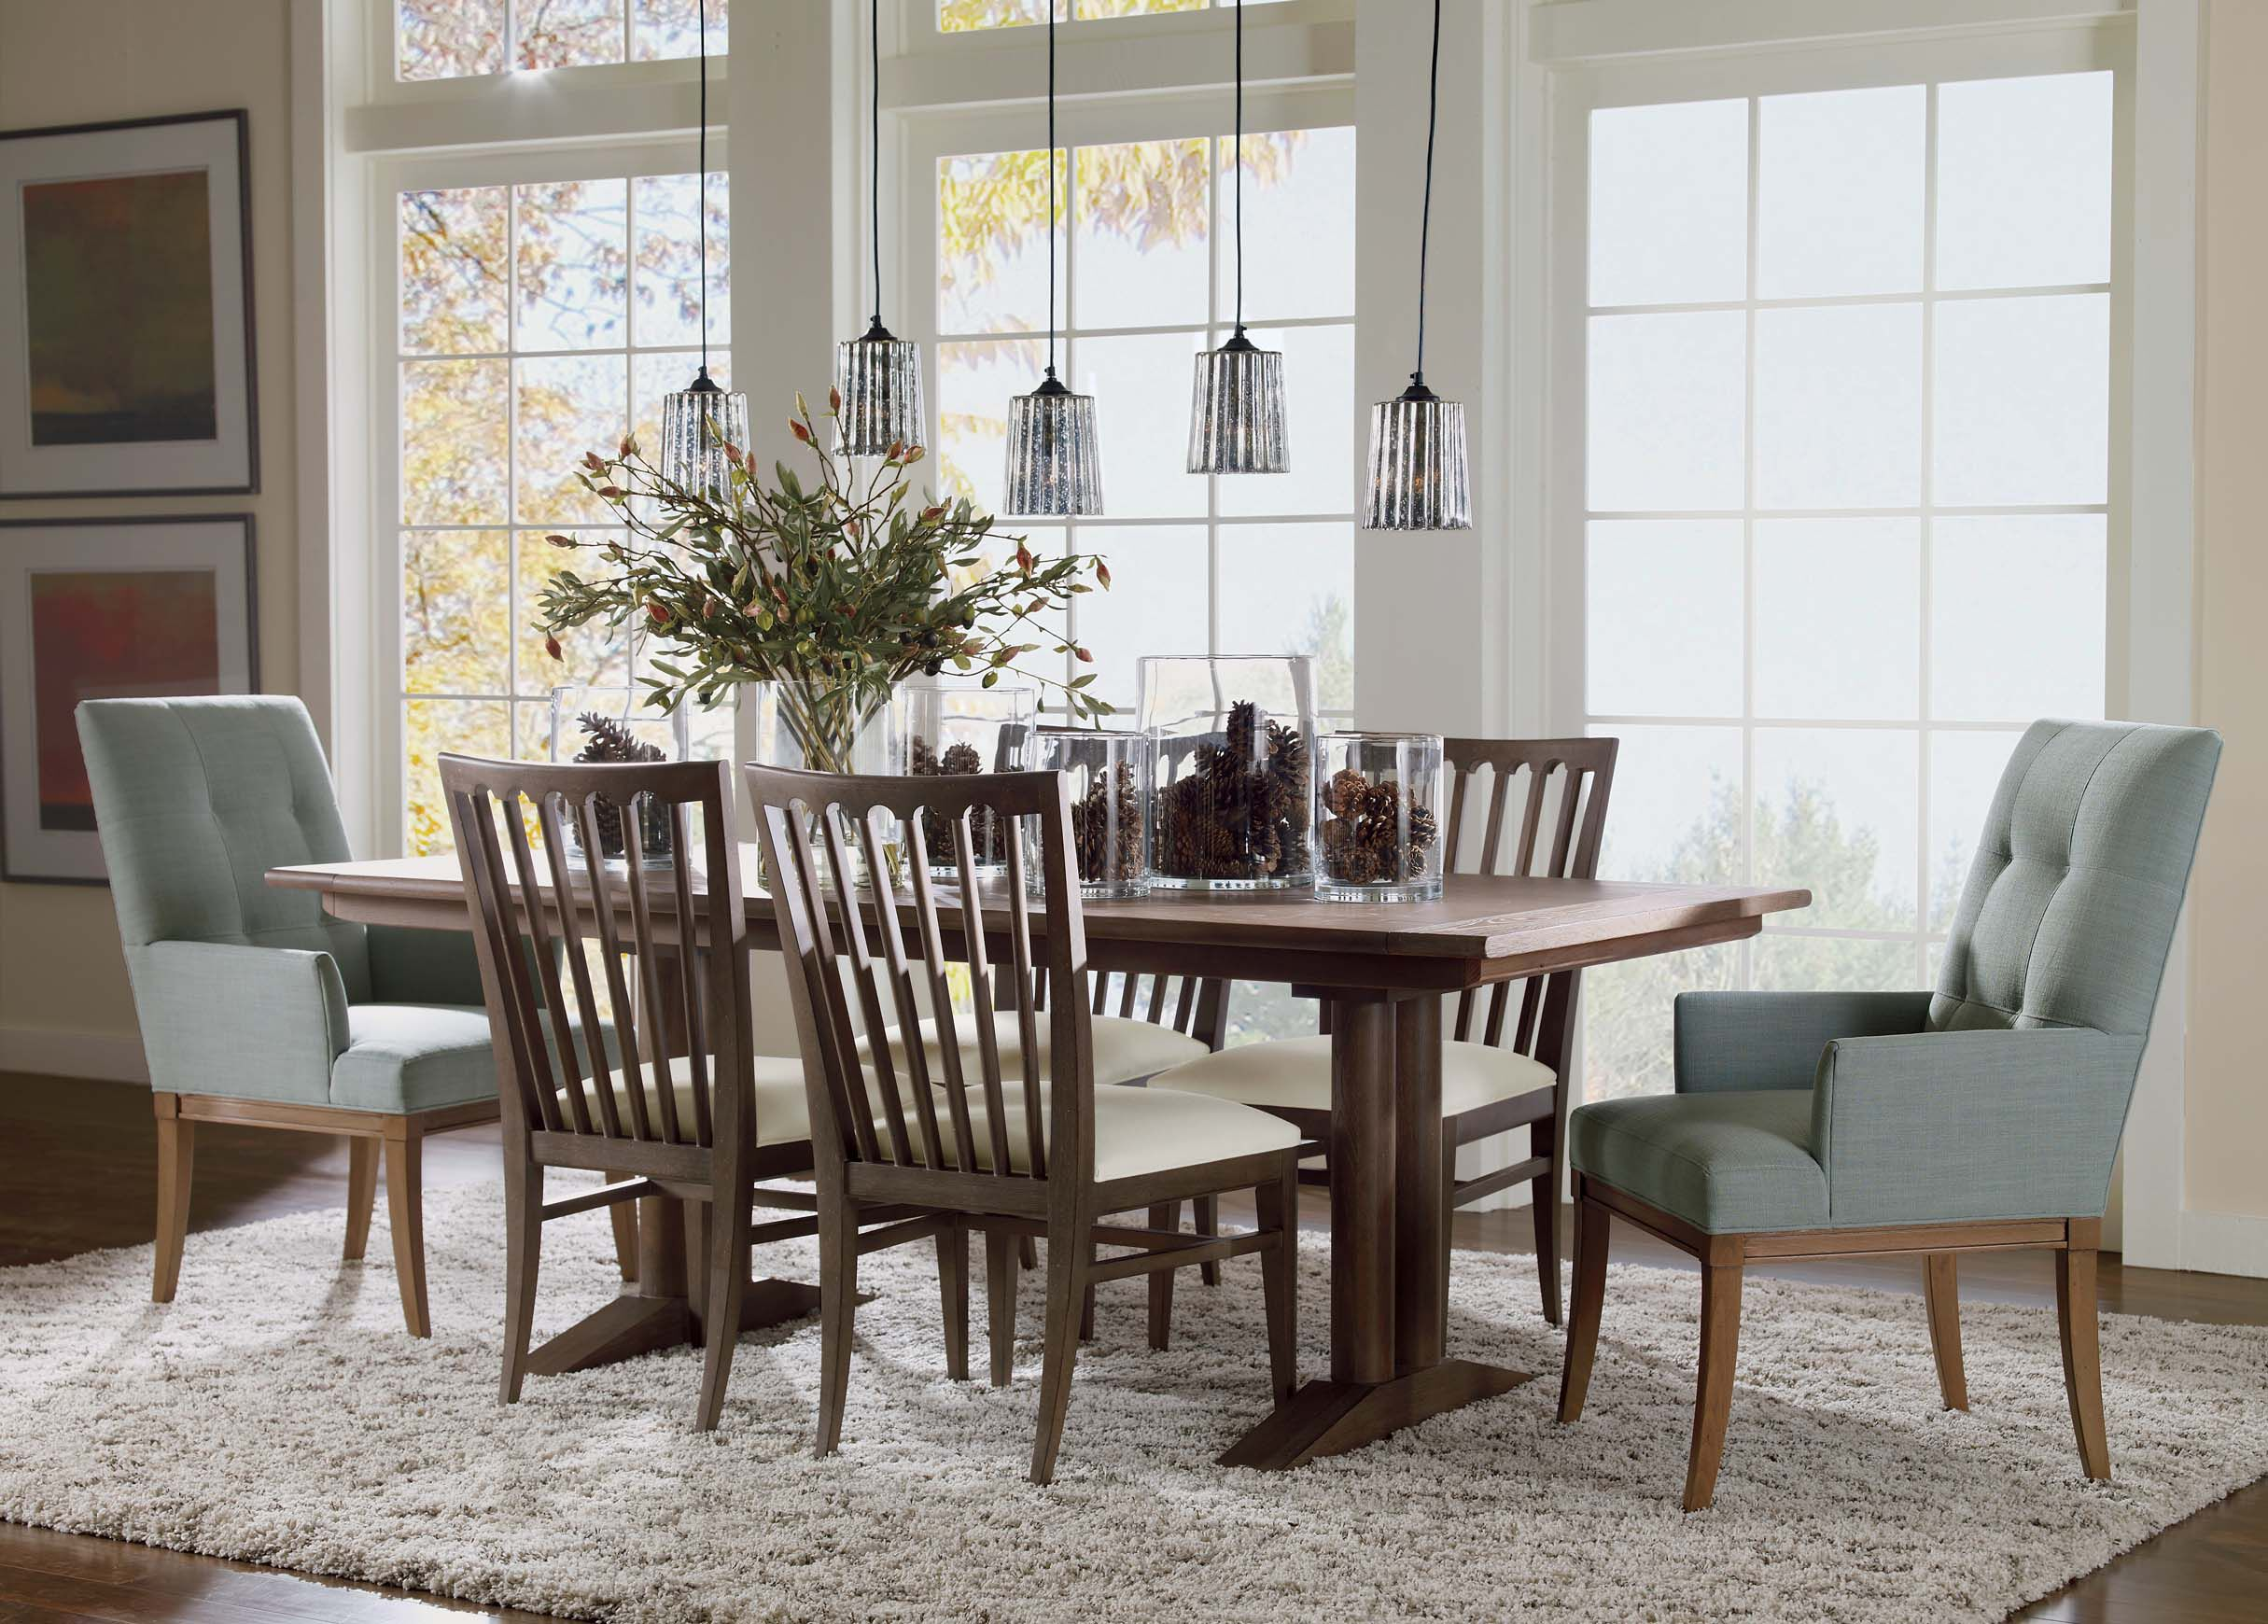 sayer dining table dining tables ethan allen rh ethanallen com ethan allen dining table and chairs for sale ethan allen dining room chairs for sale